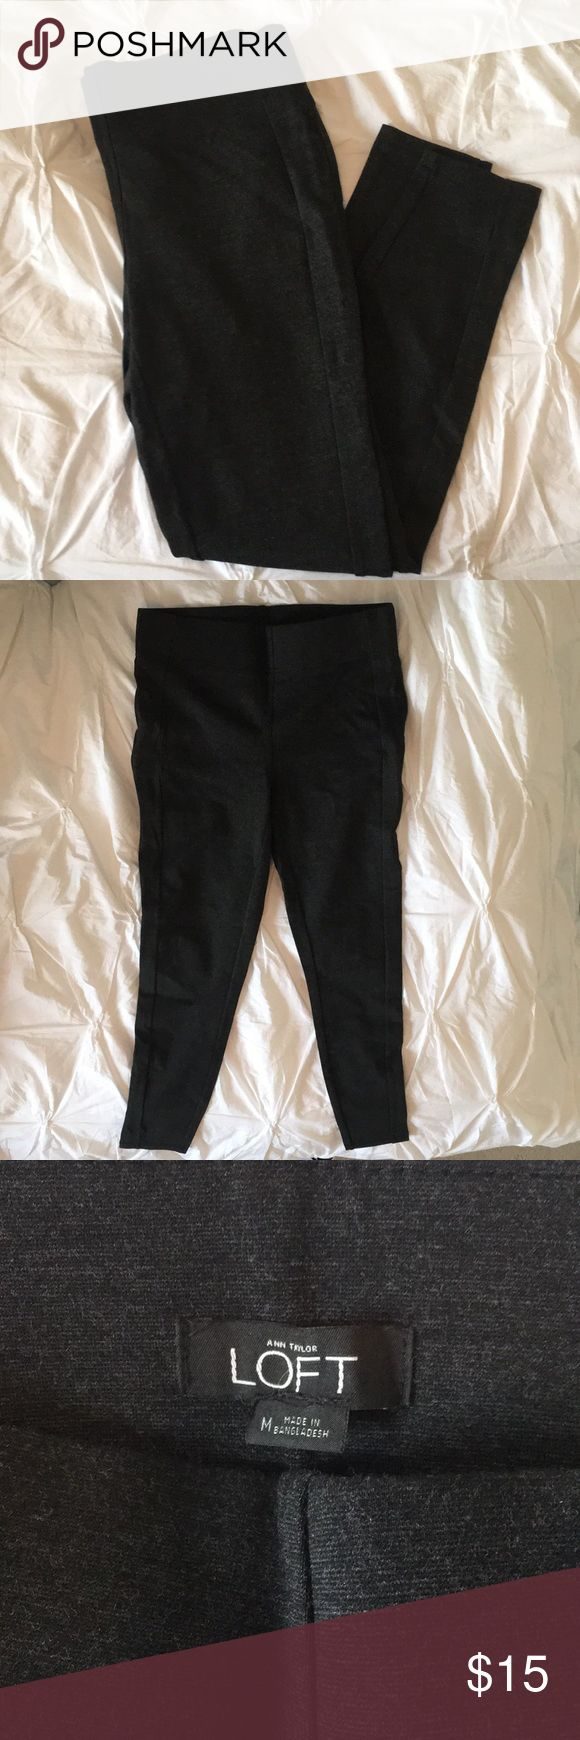 Charcoal LOFT Leggings These charcoal leggings from LOFT will be the perfect staple to your closet and will go with anything. Ankle length. Worn once. LOFT Pants Leggings